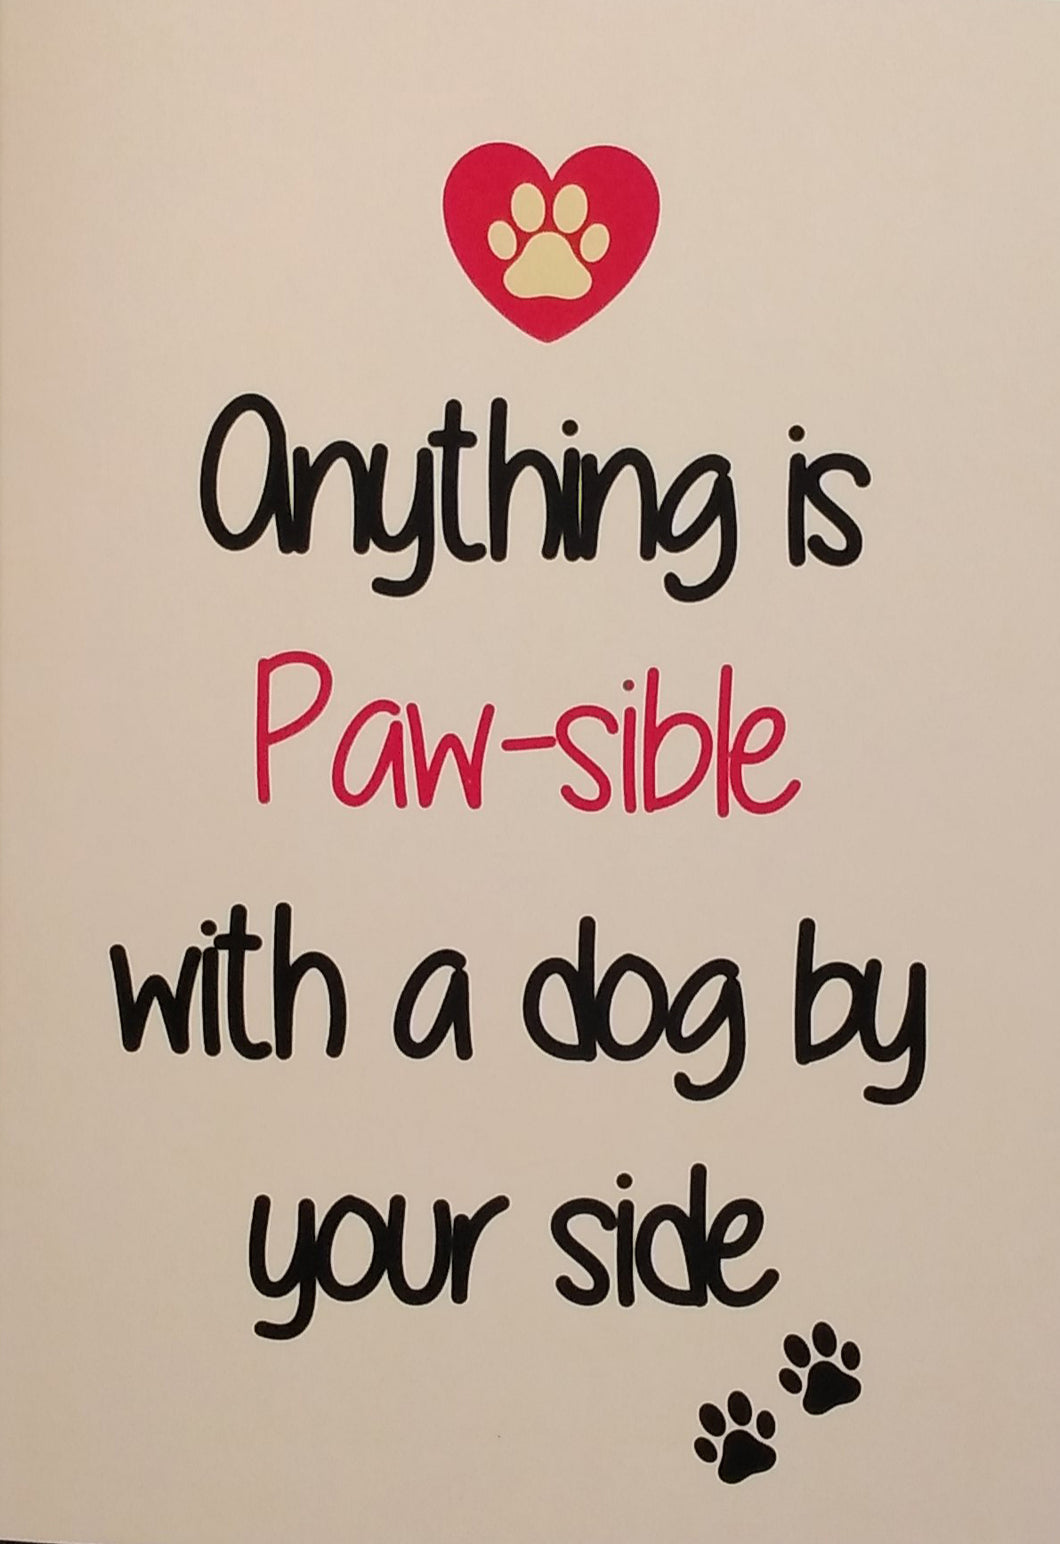 Anything is Pawsible card